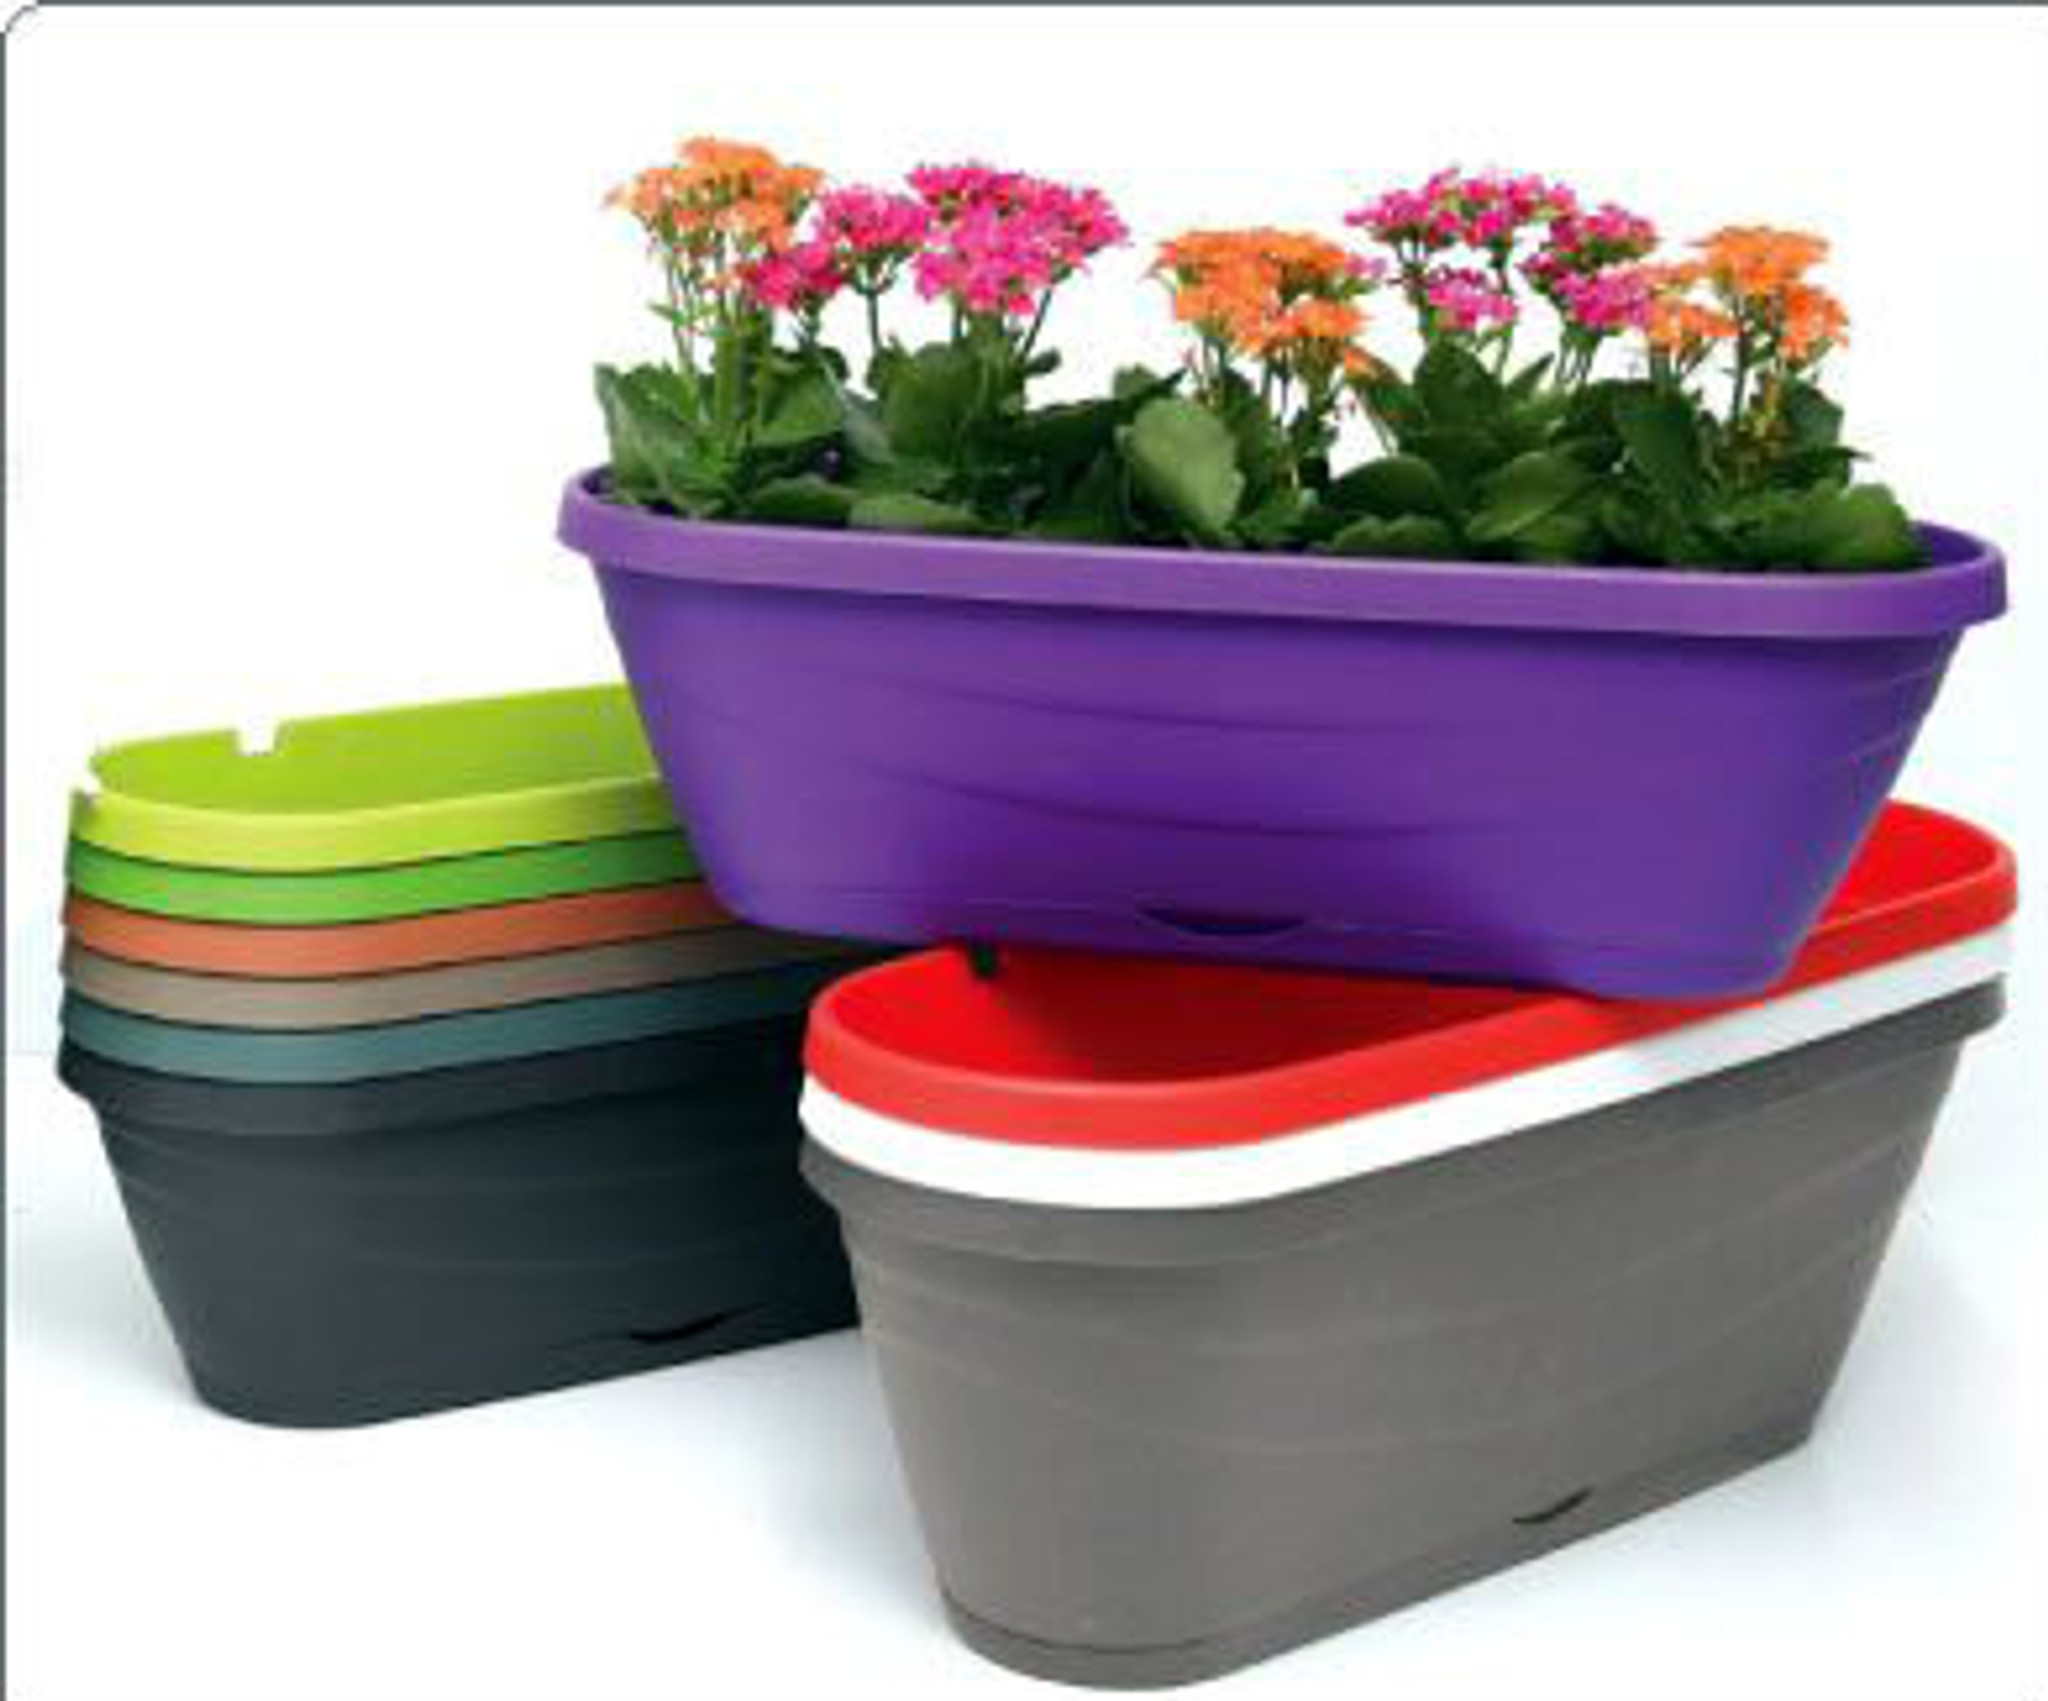 hanging planters flower box to garden fence  or balcony rail ., Range of colours white,  purple, red , green, brown